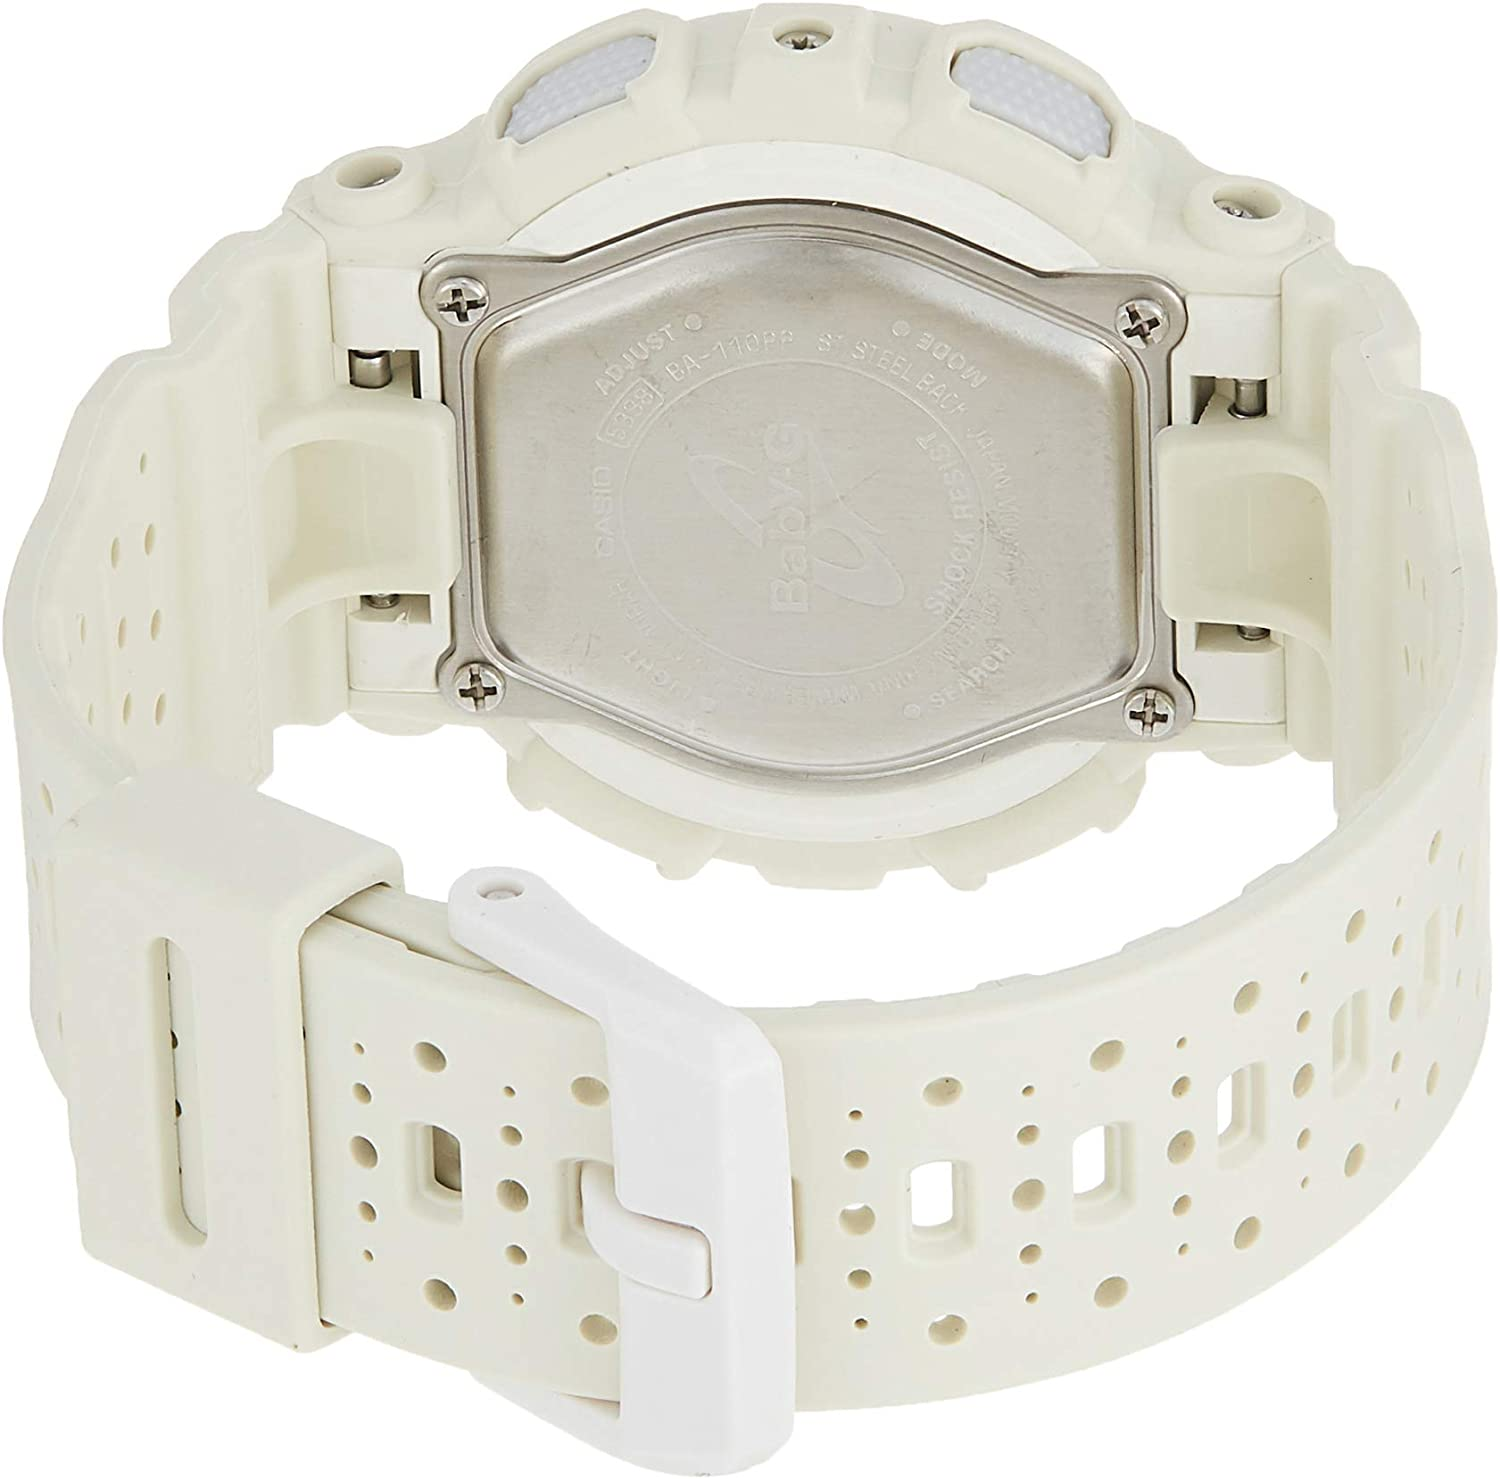 Casio Women's Digital Watch with Resin Strap, White, 24 (Model: BA110PP-7A)